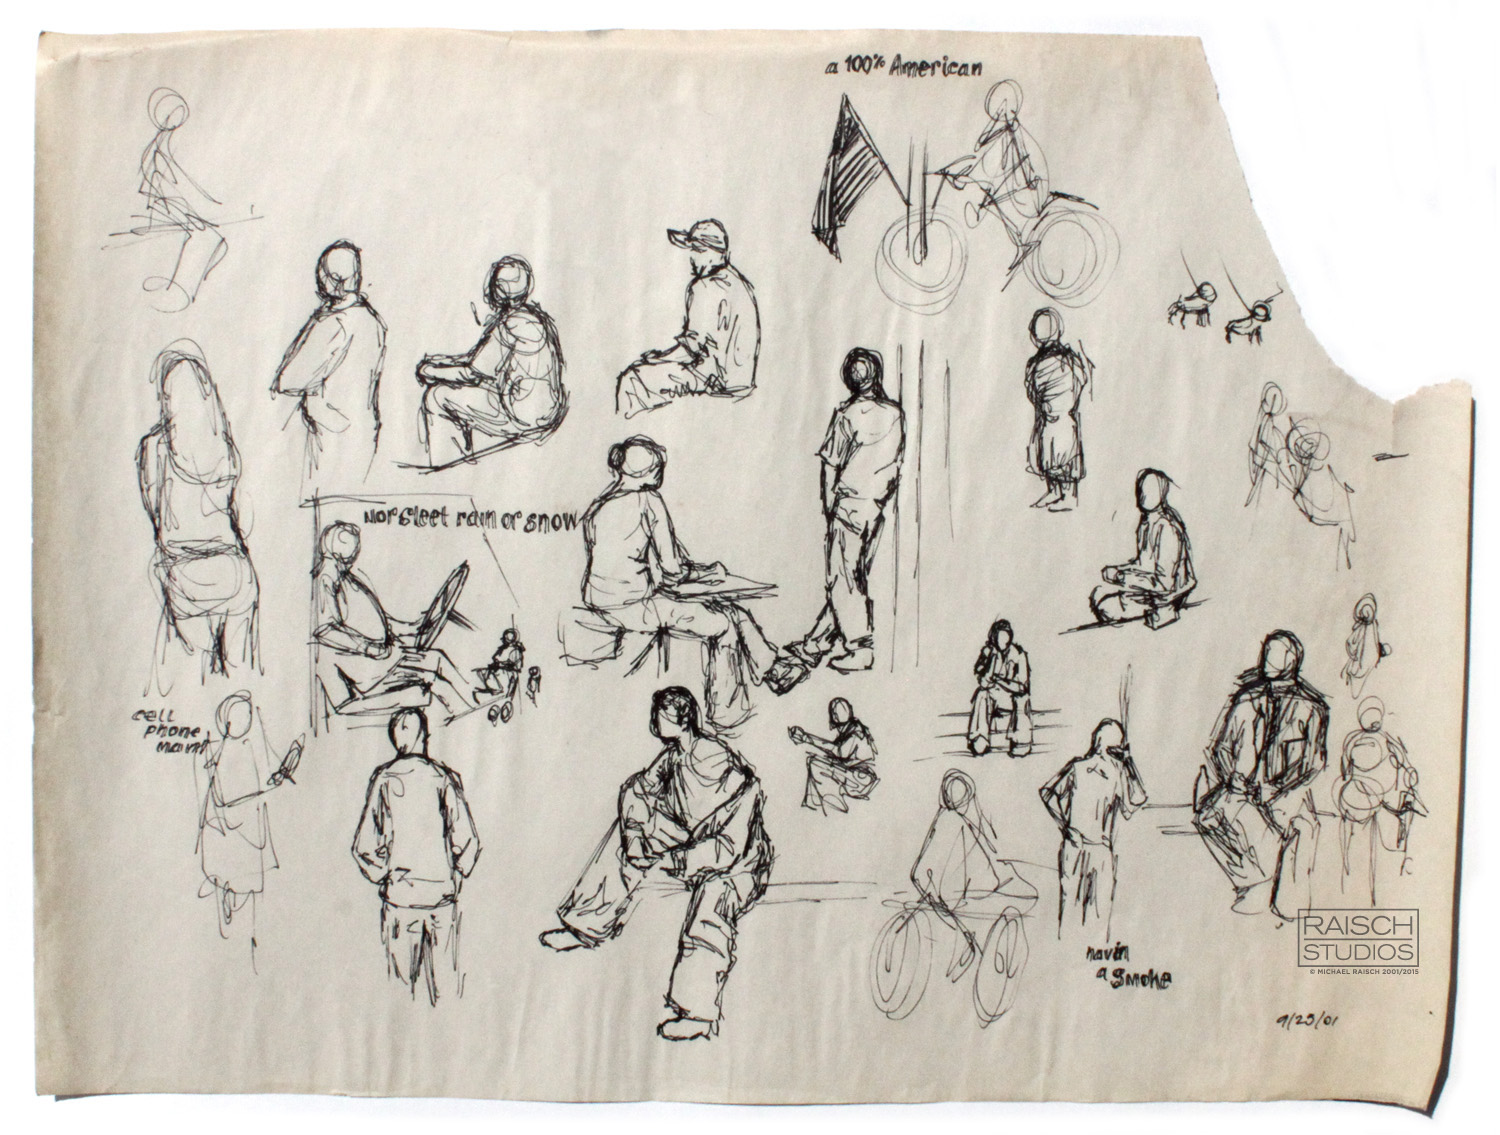 Original gesture drawings and captions, 9/25/01 – Michael Raisch © 2001